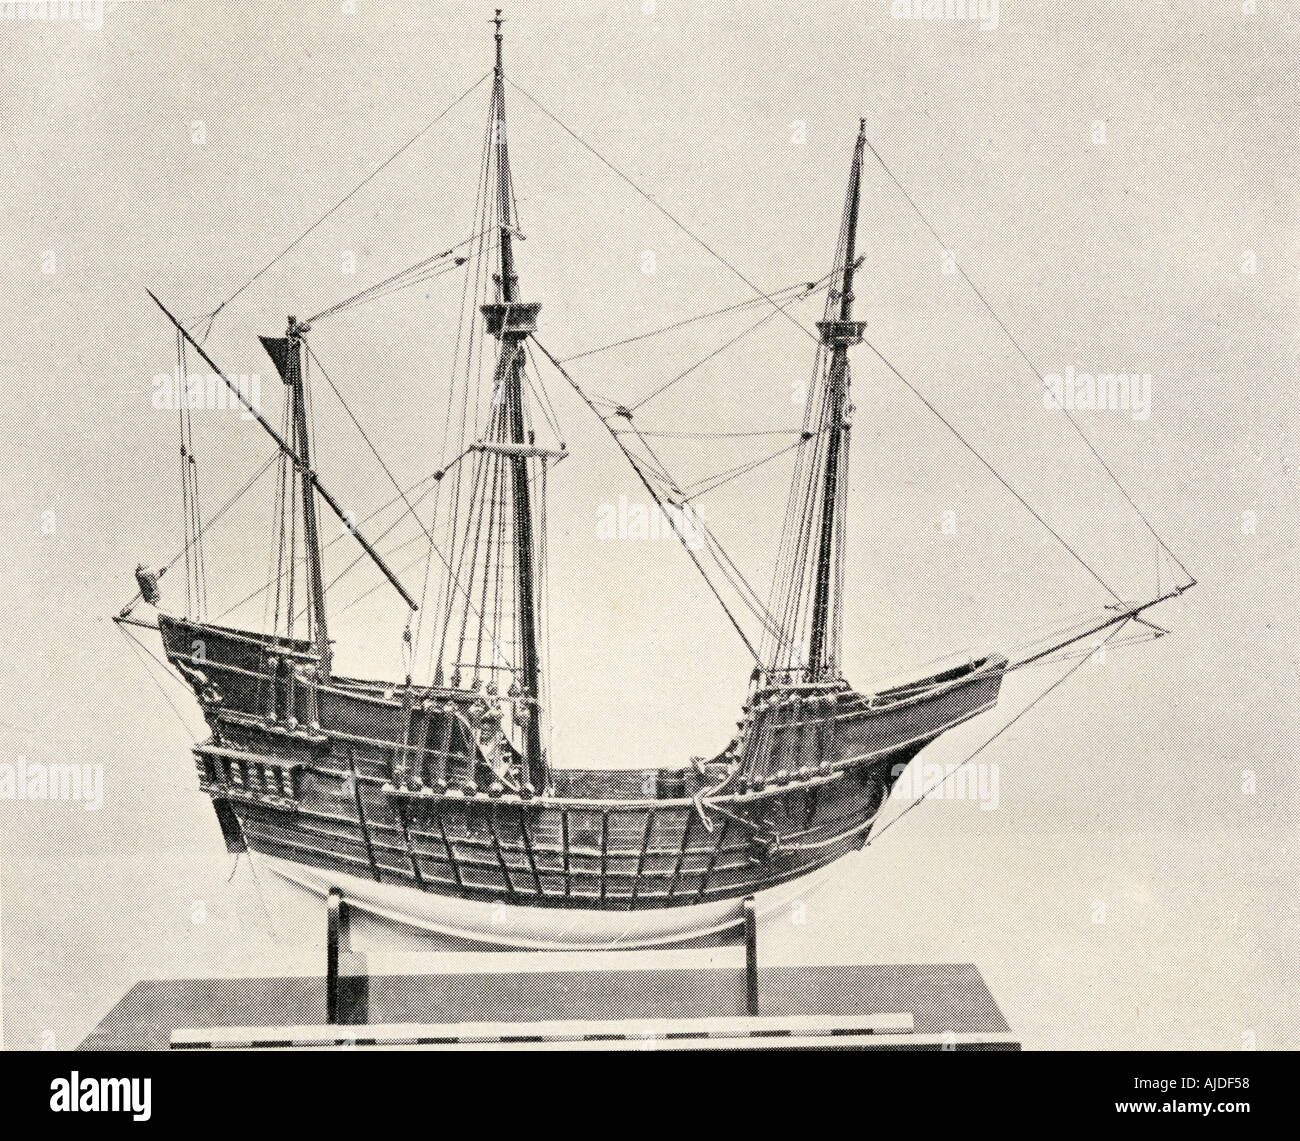 Portuguese Carrack from the 15th century. - Stock Image